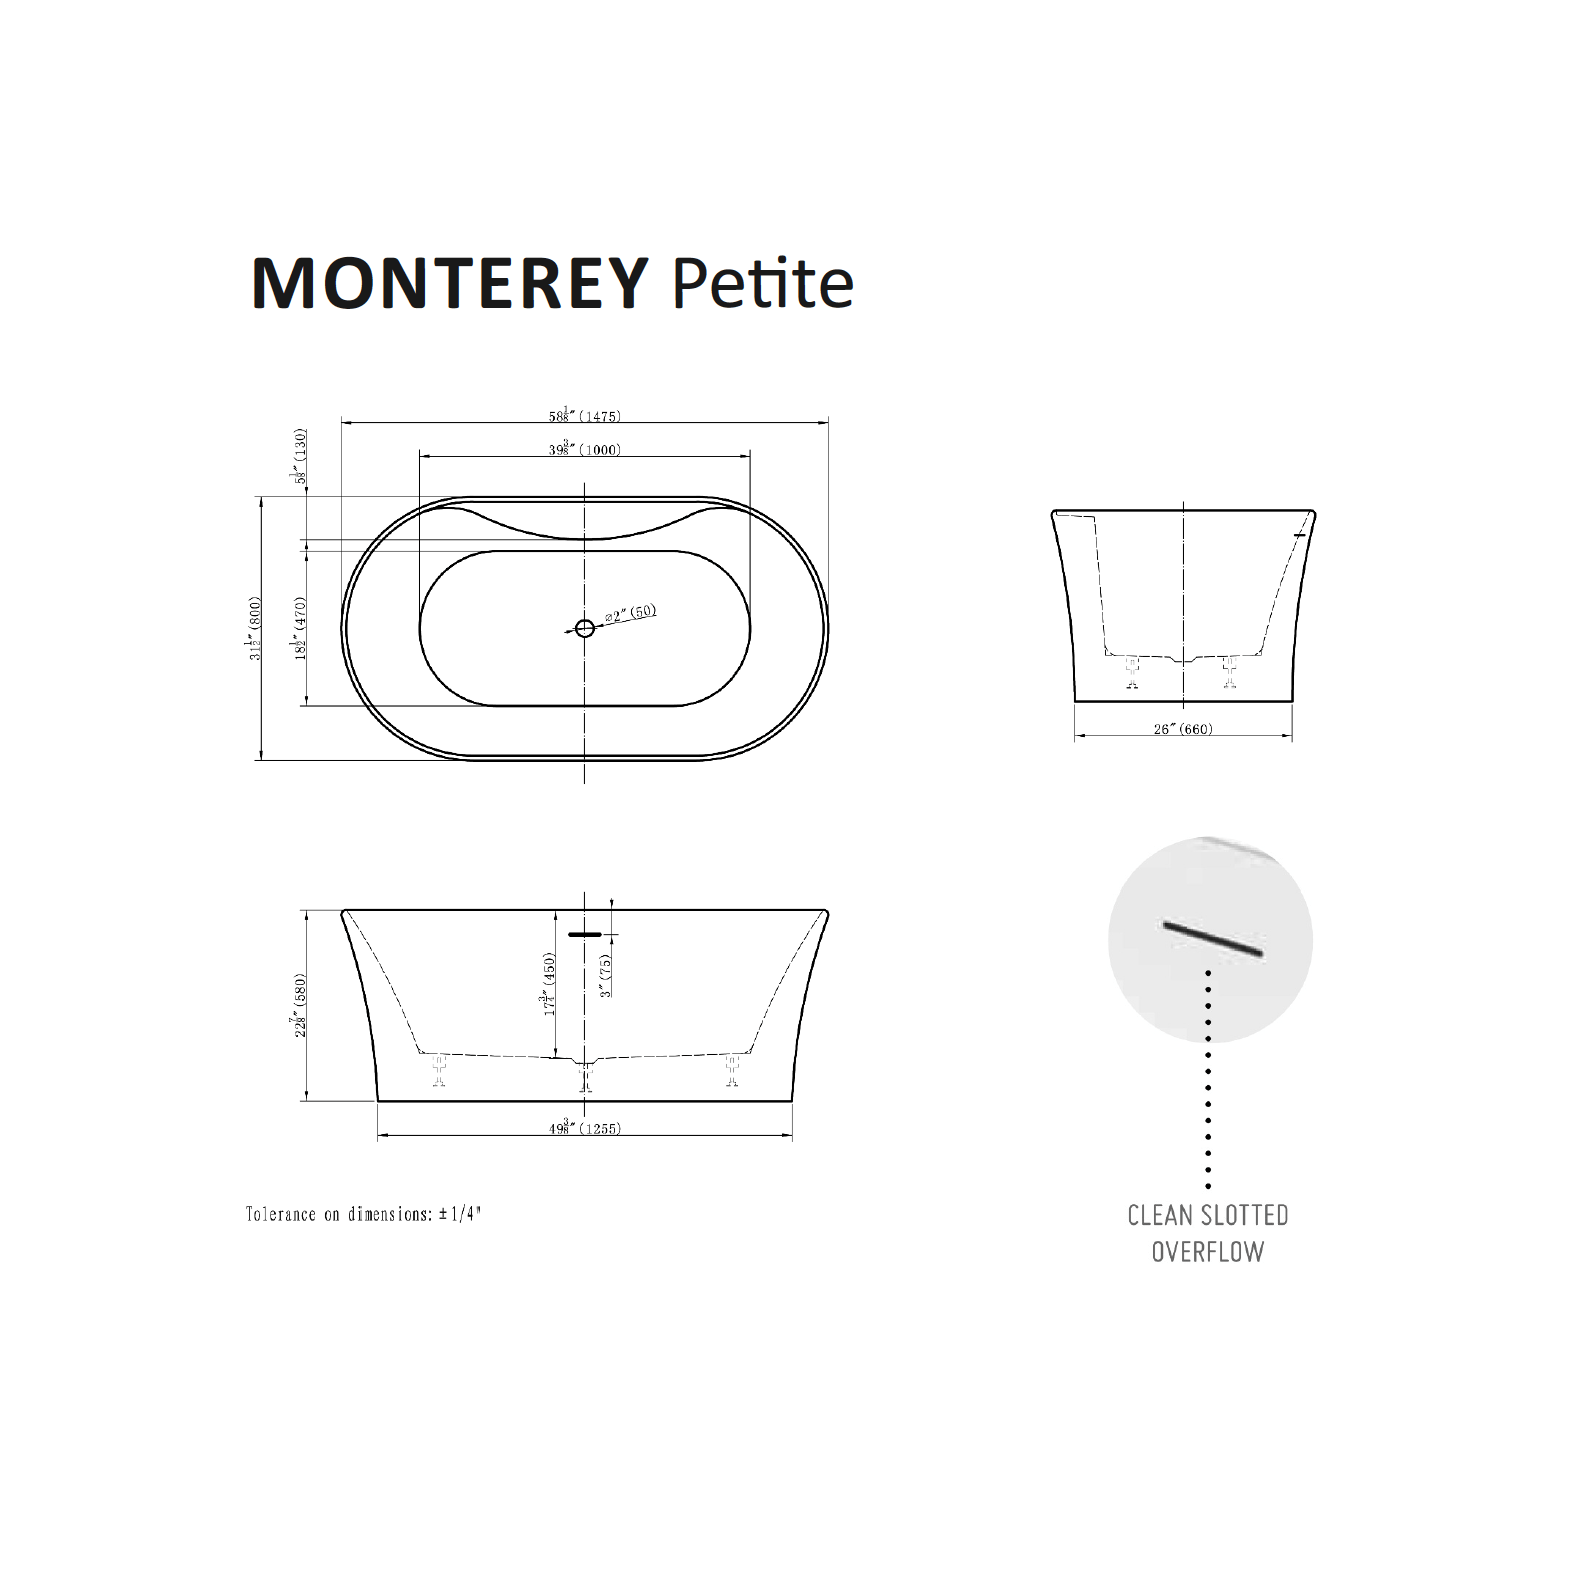 Monterey Petite Tub Specifications